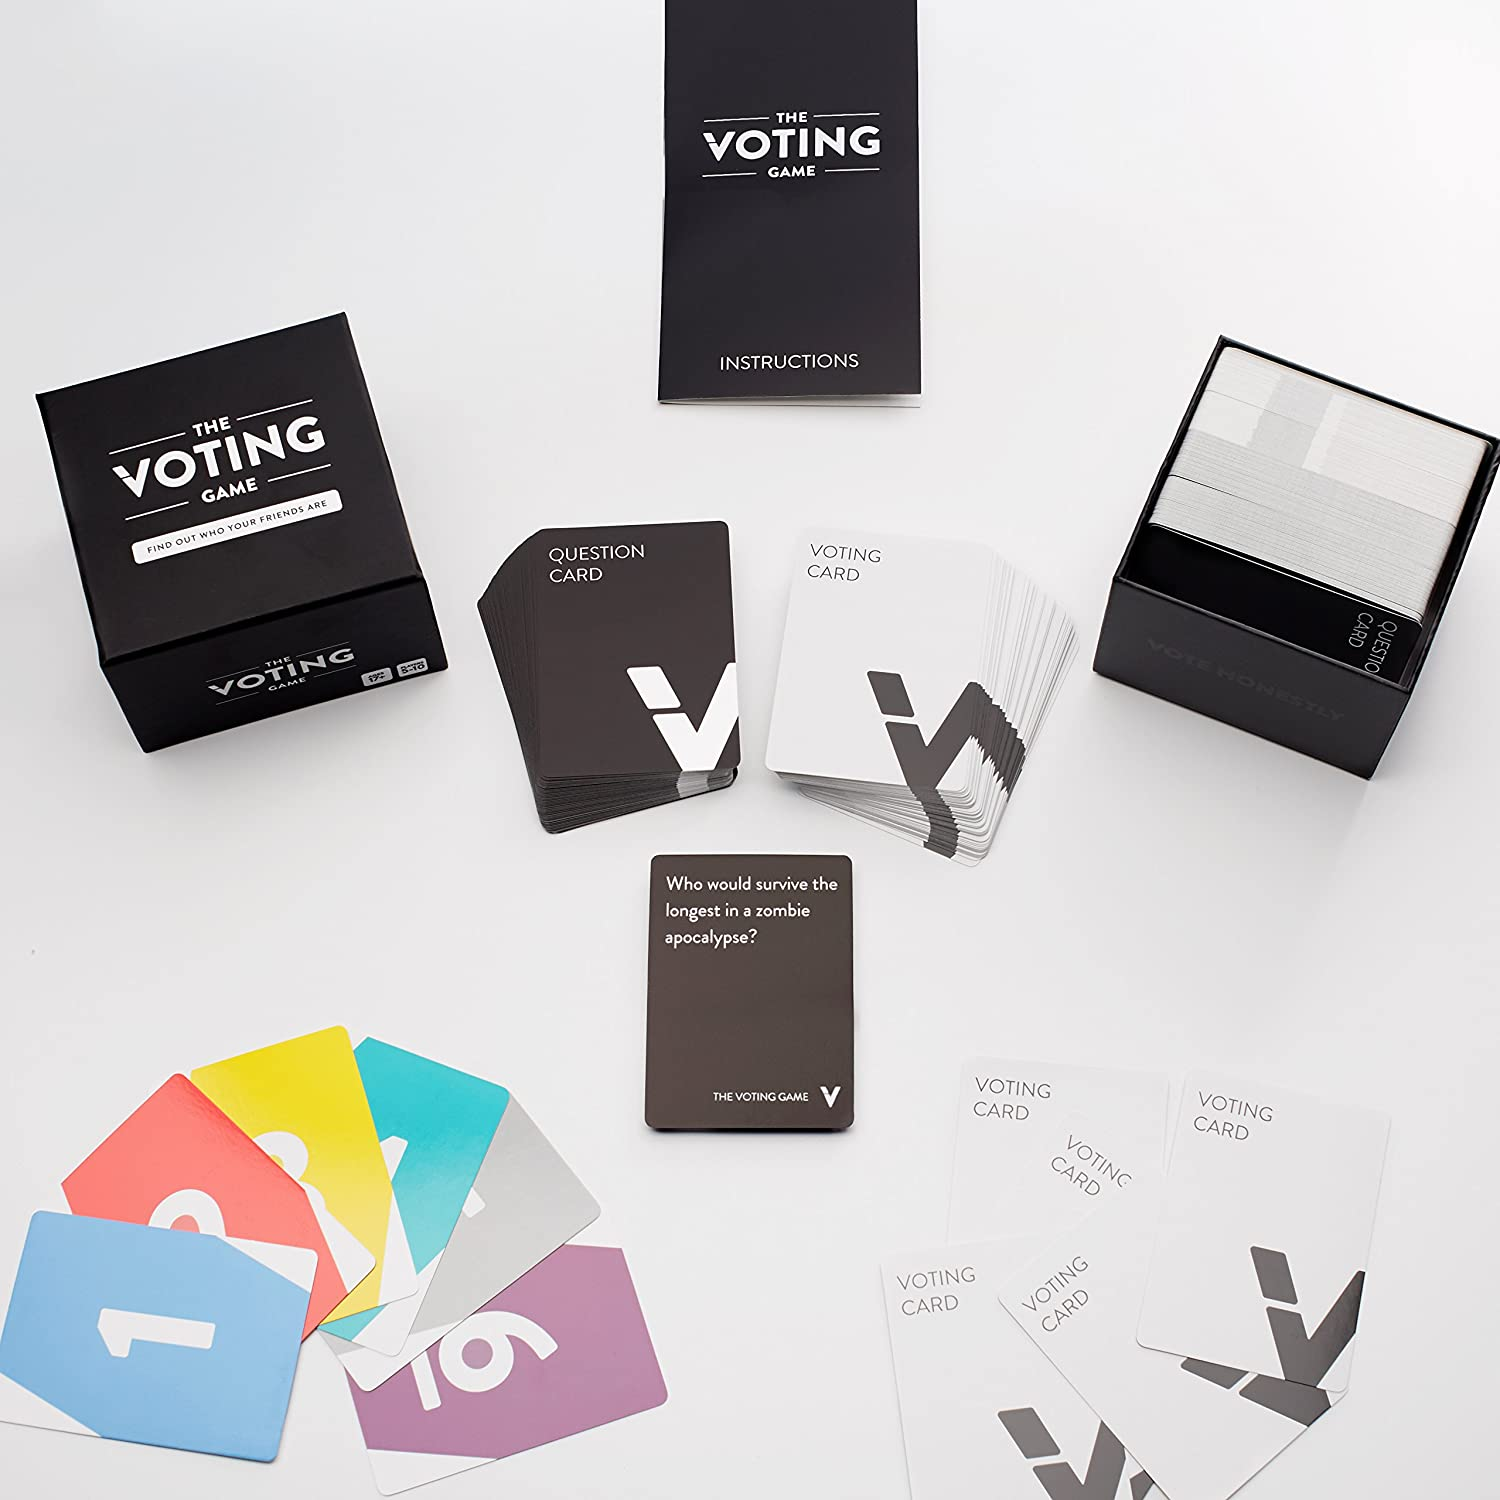 the voting game - board games for deploy soldiers